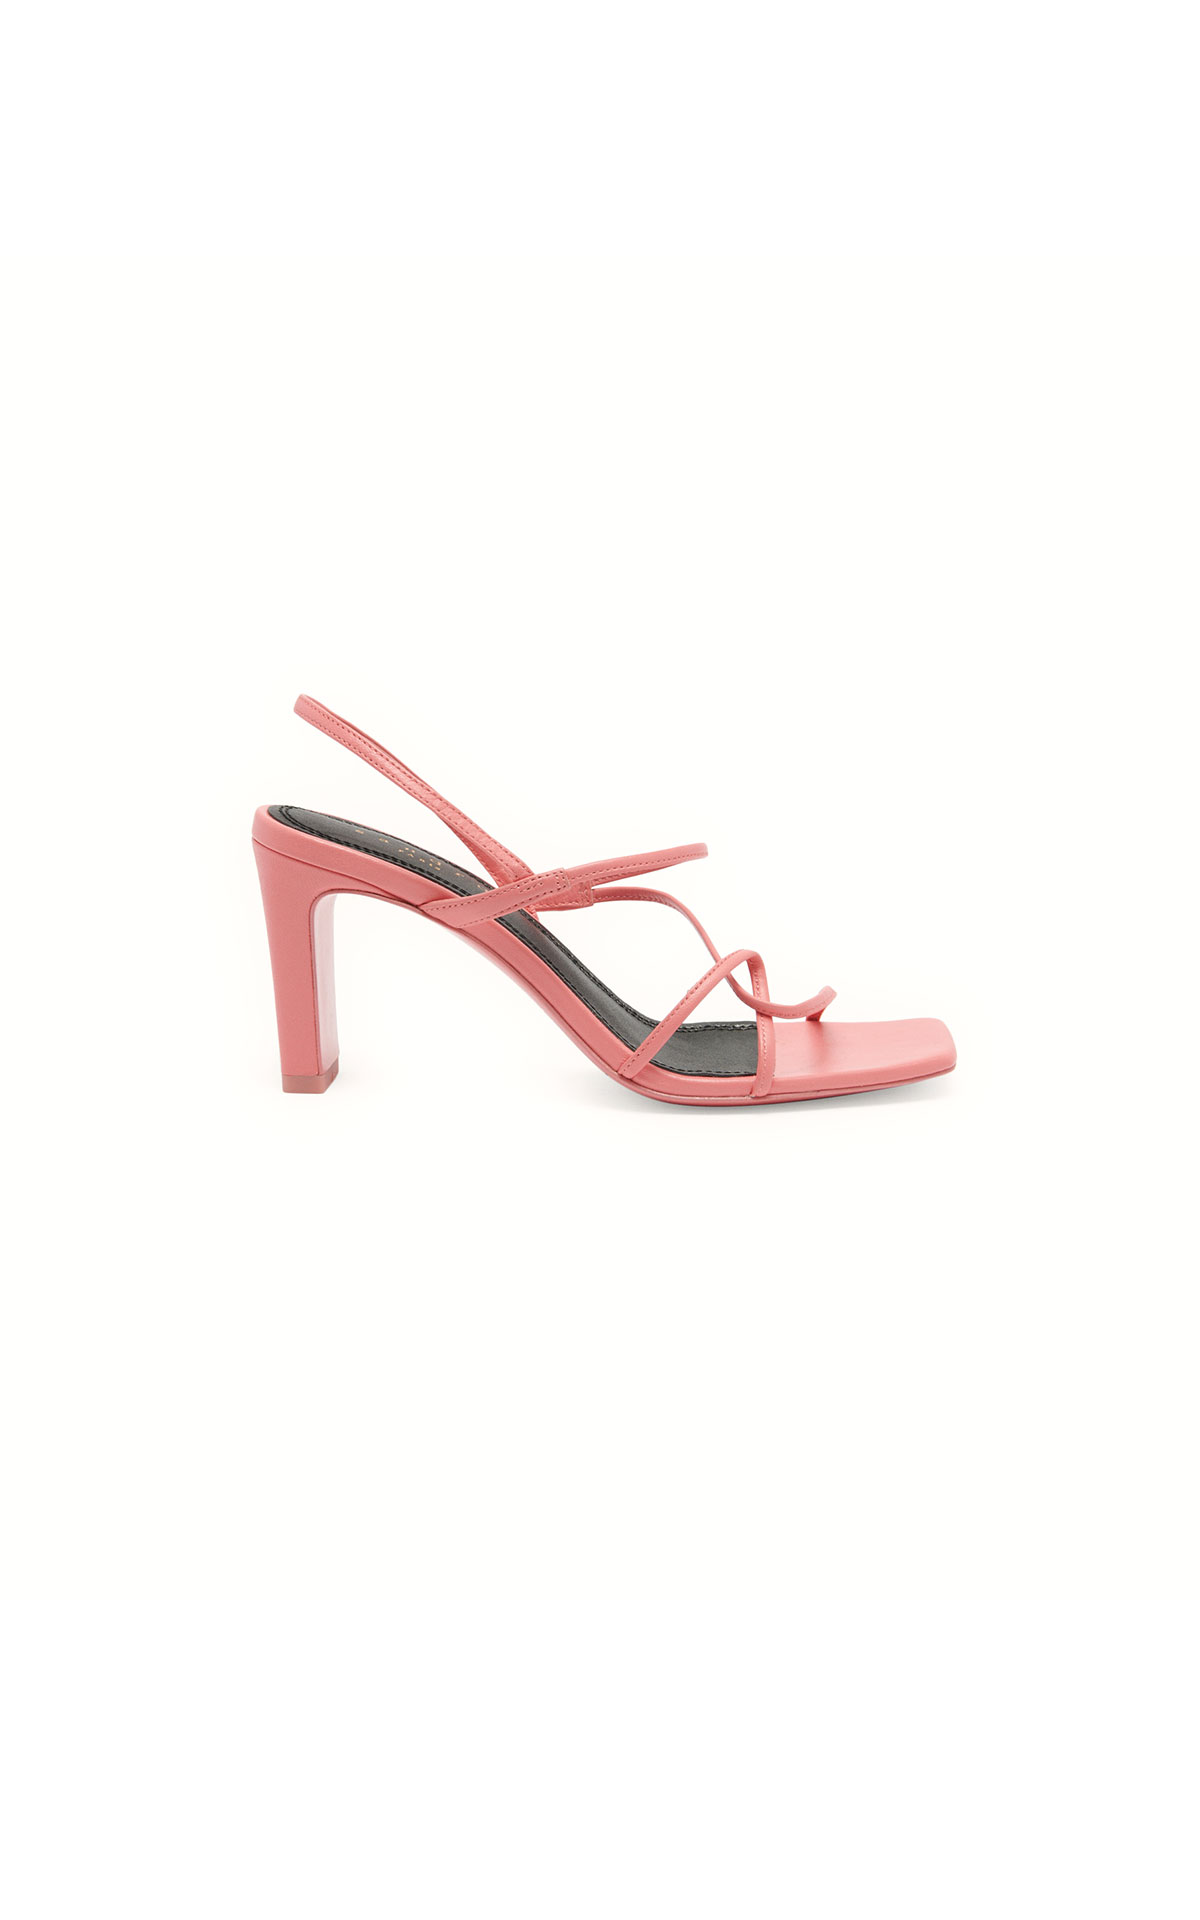 Sandro sandal with wide heel at The Bicester Village Shopping Collection